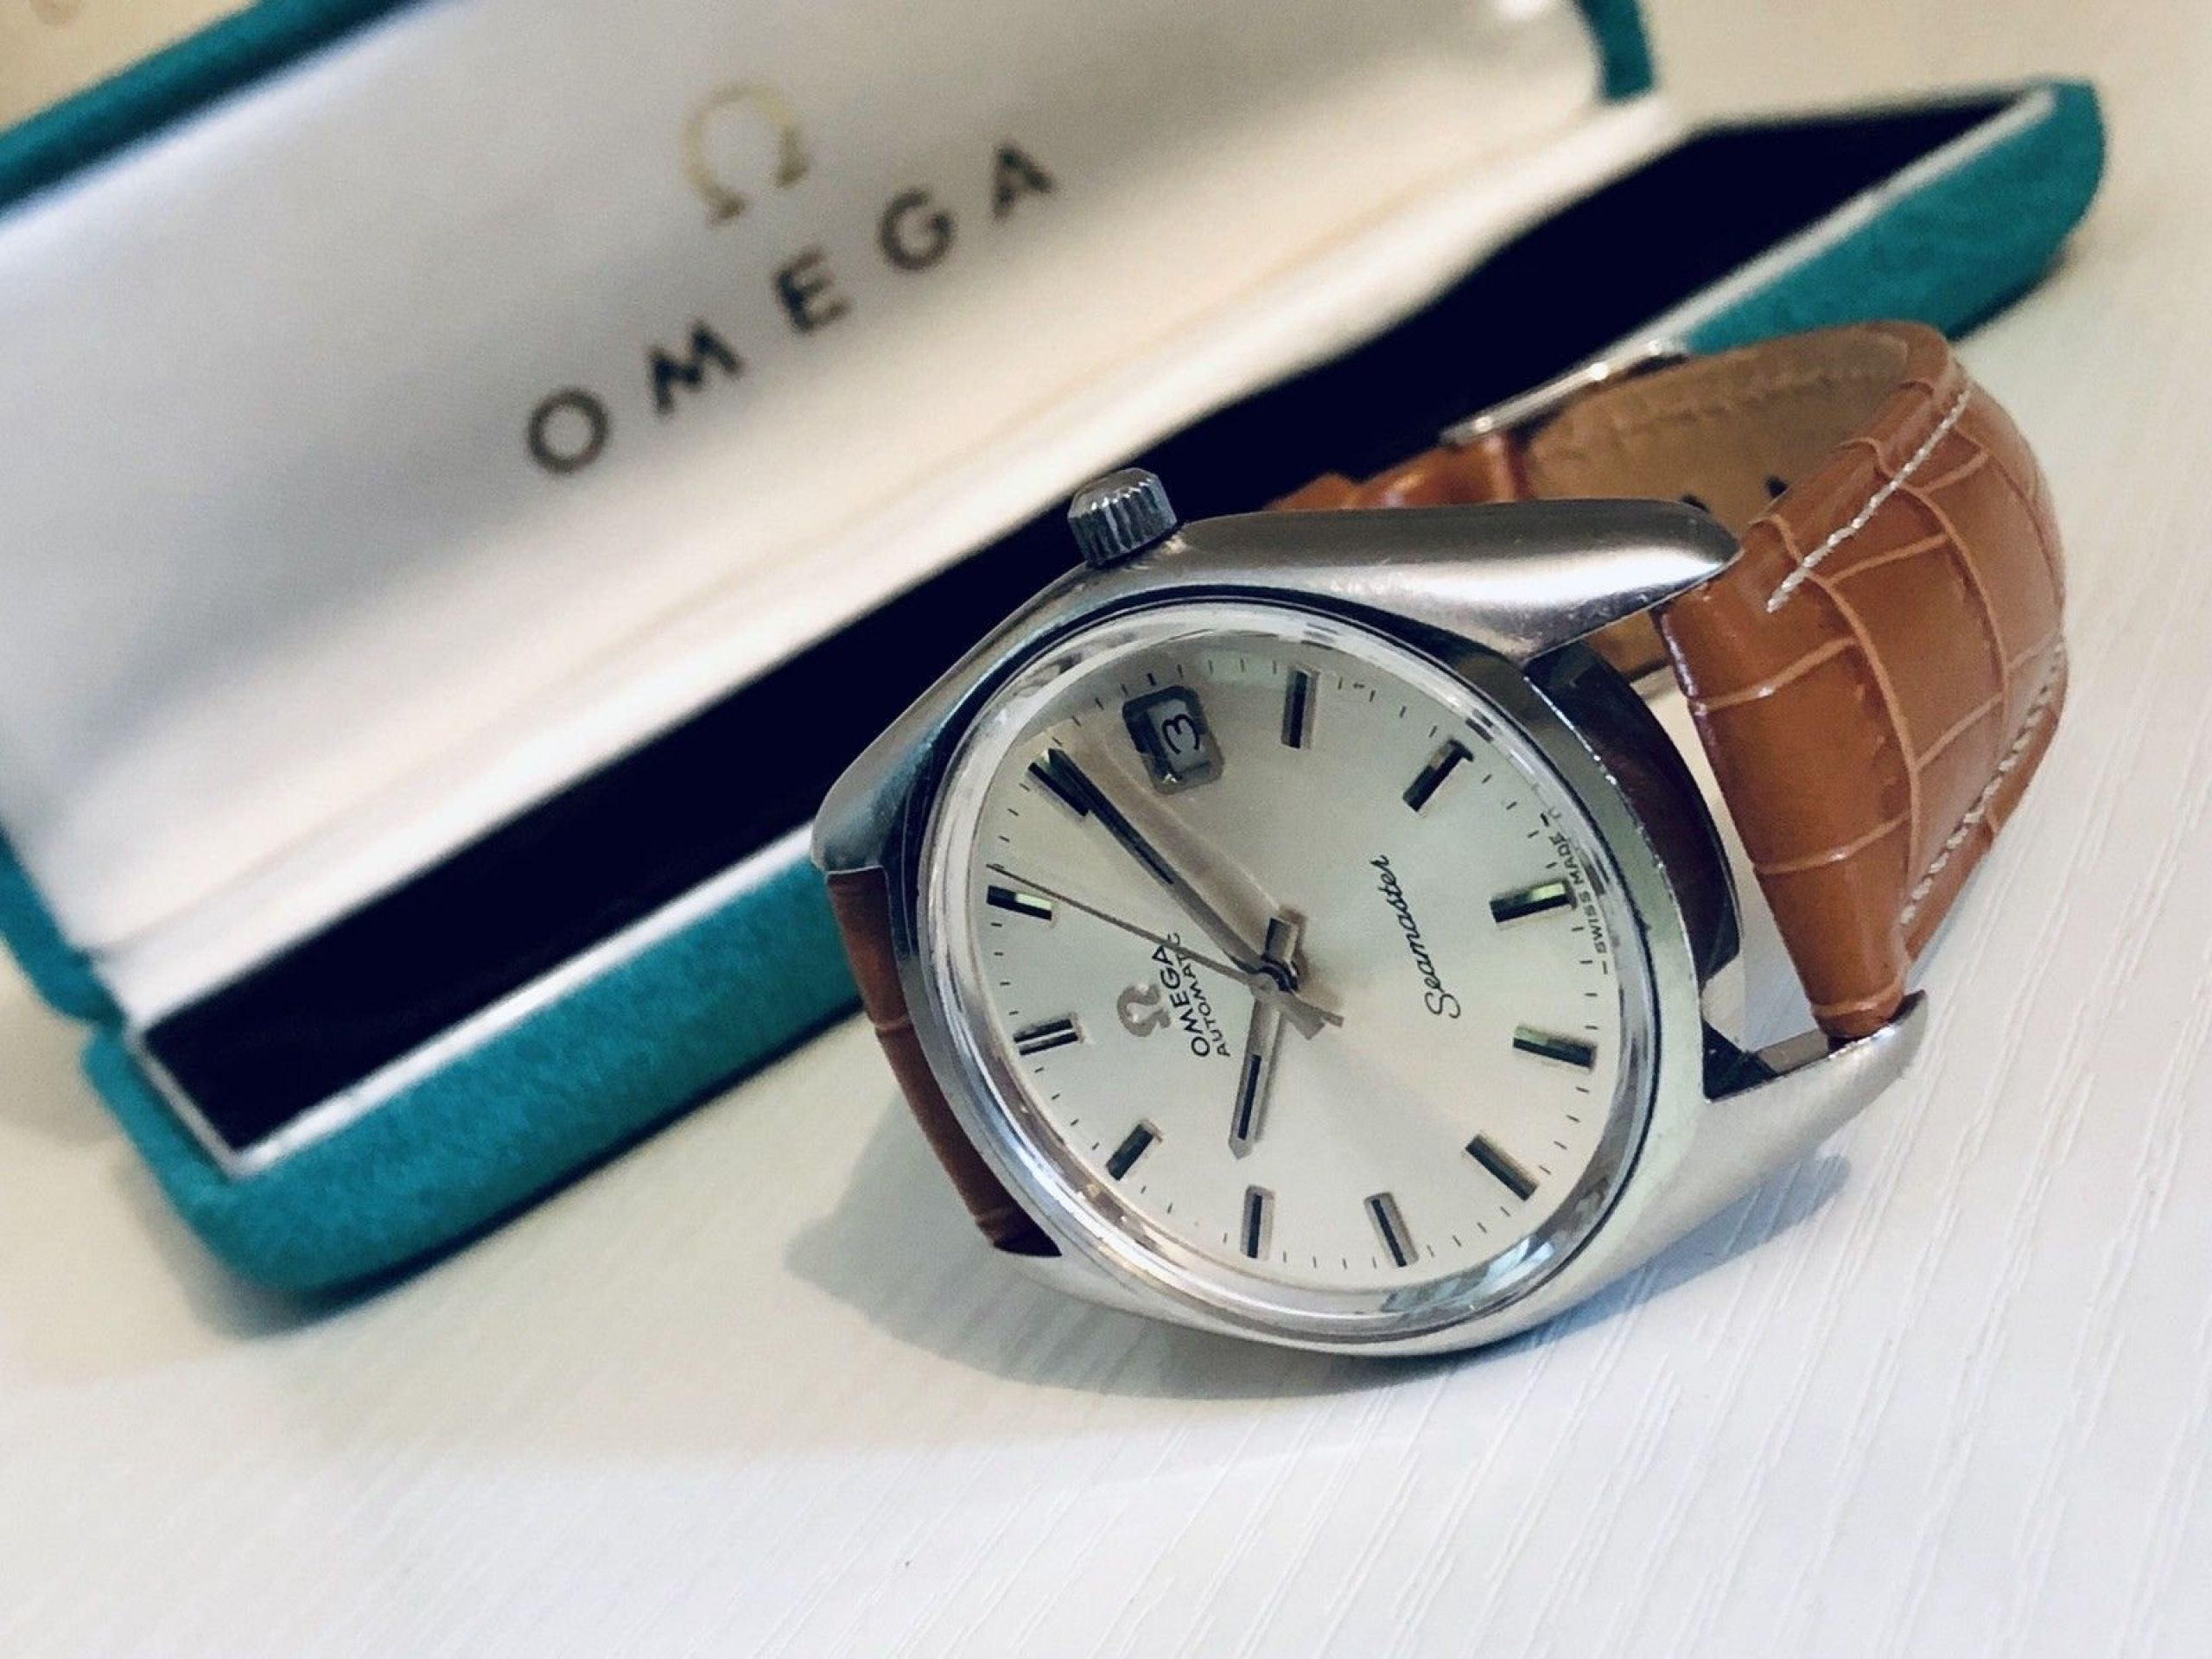 OMEGA MENS SEAMASTER VINTAGE WATCH CAL 1010 AUTOMATIC 1960S EXTRA NATO STRAP